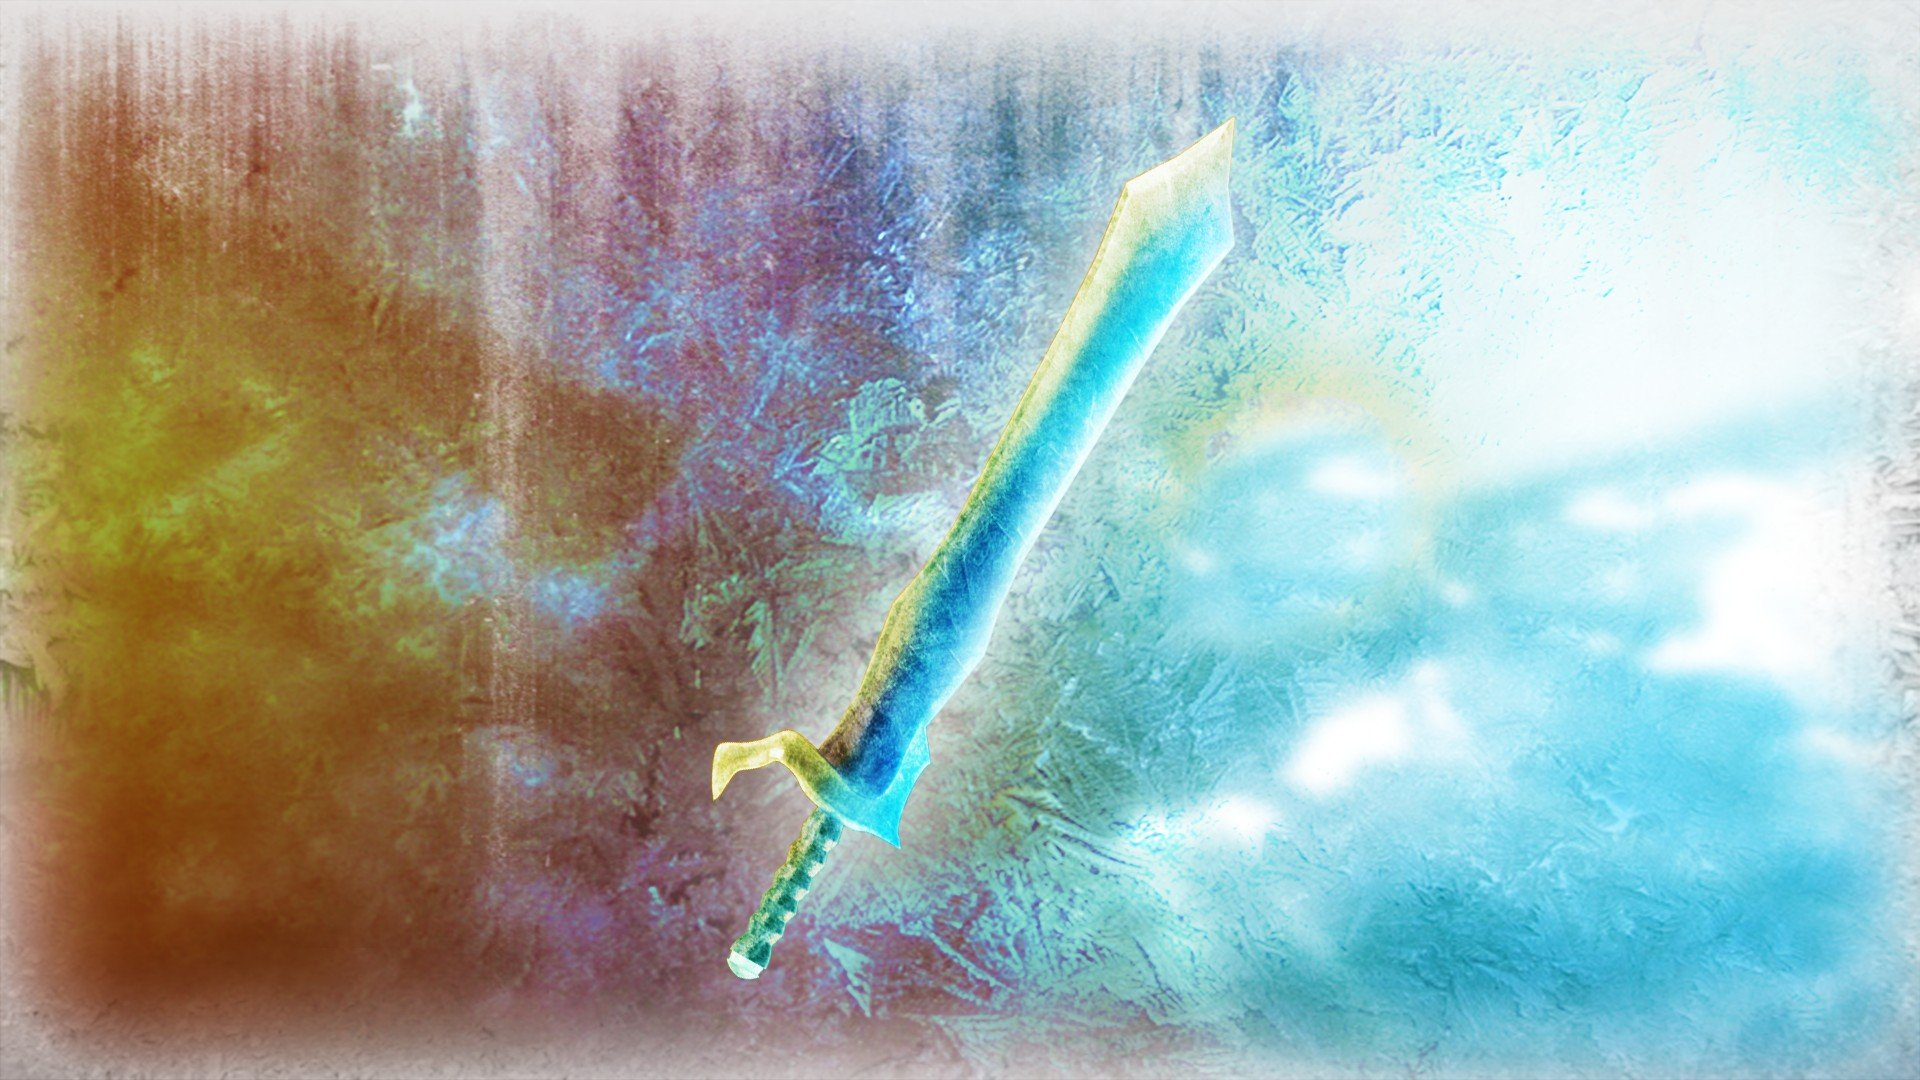 Roblox Sword Hd Wallpapers Desktop And Mobile Images Photos